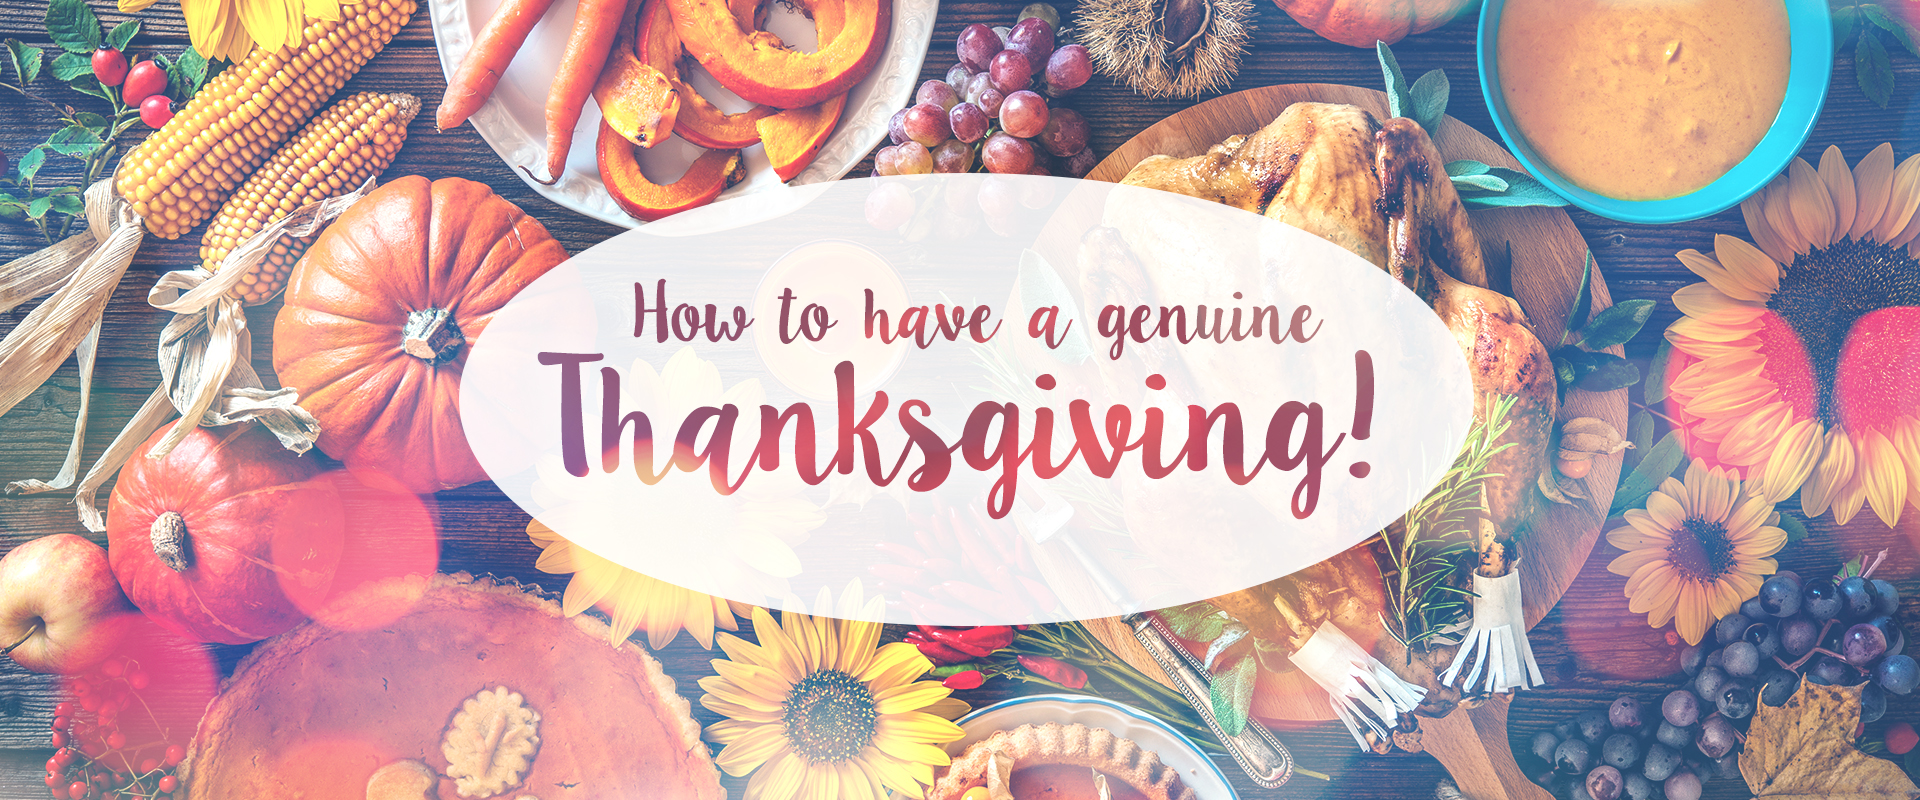 how to have thanksgiving